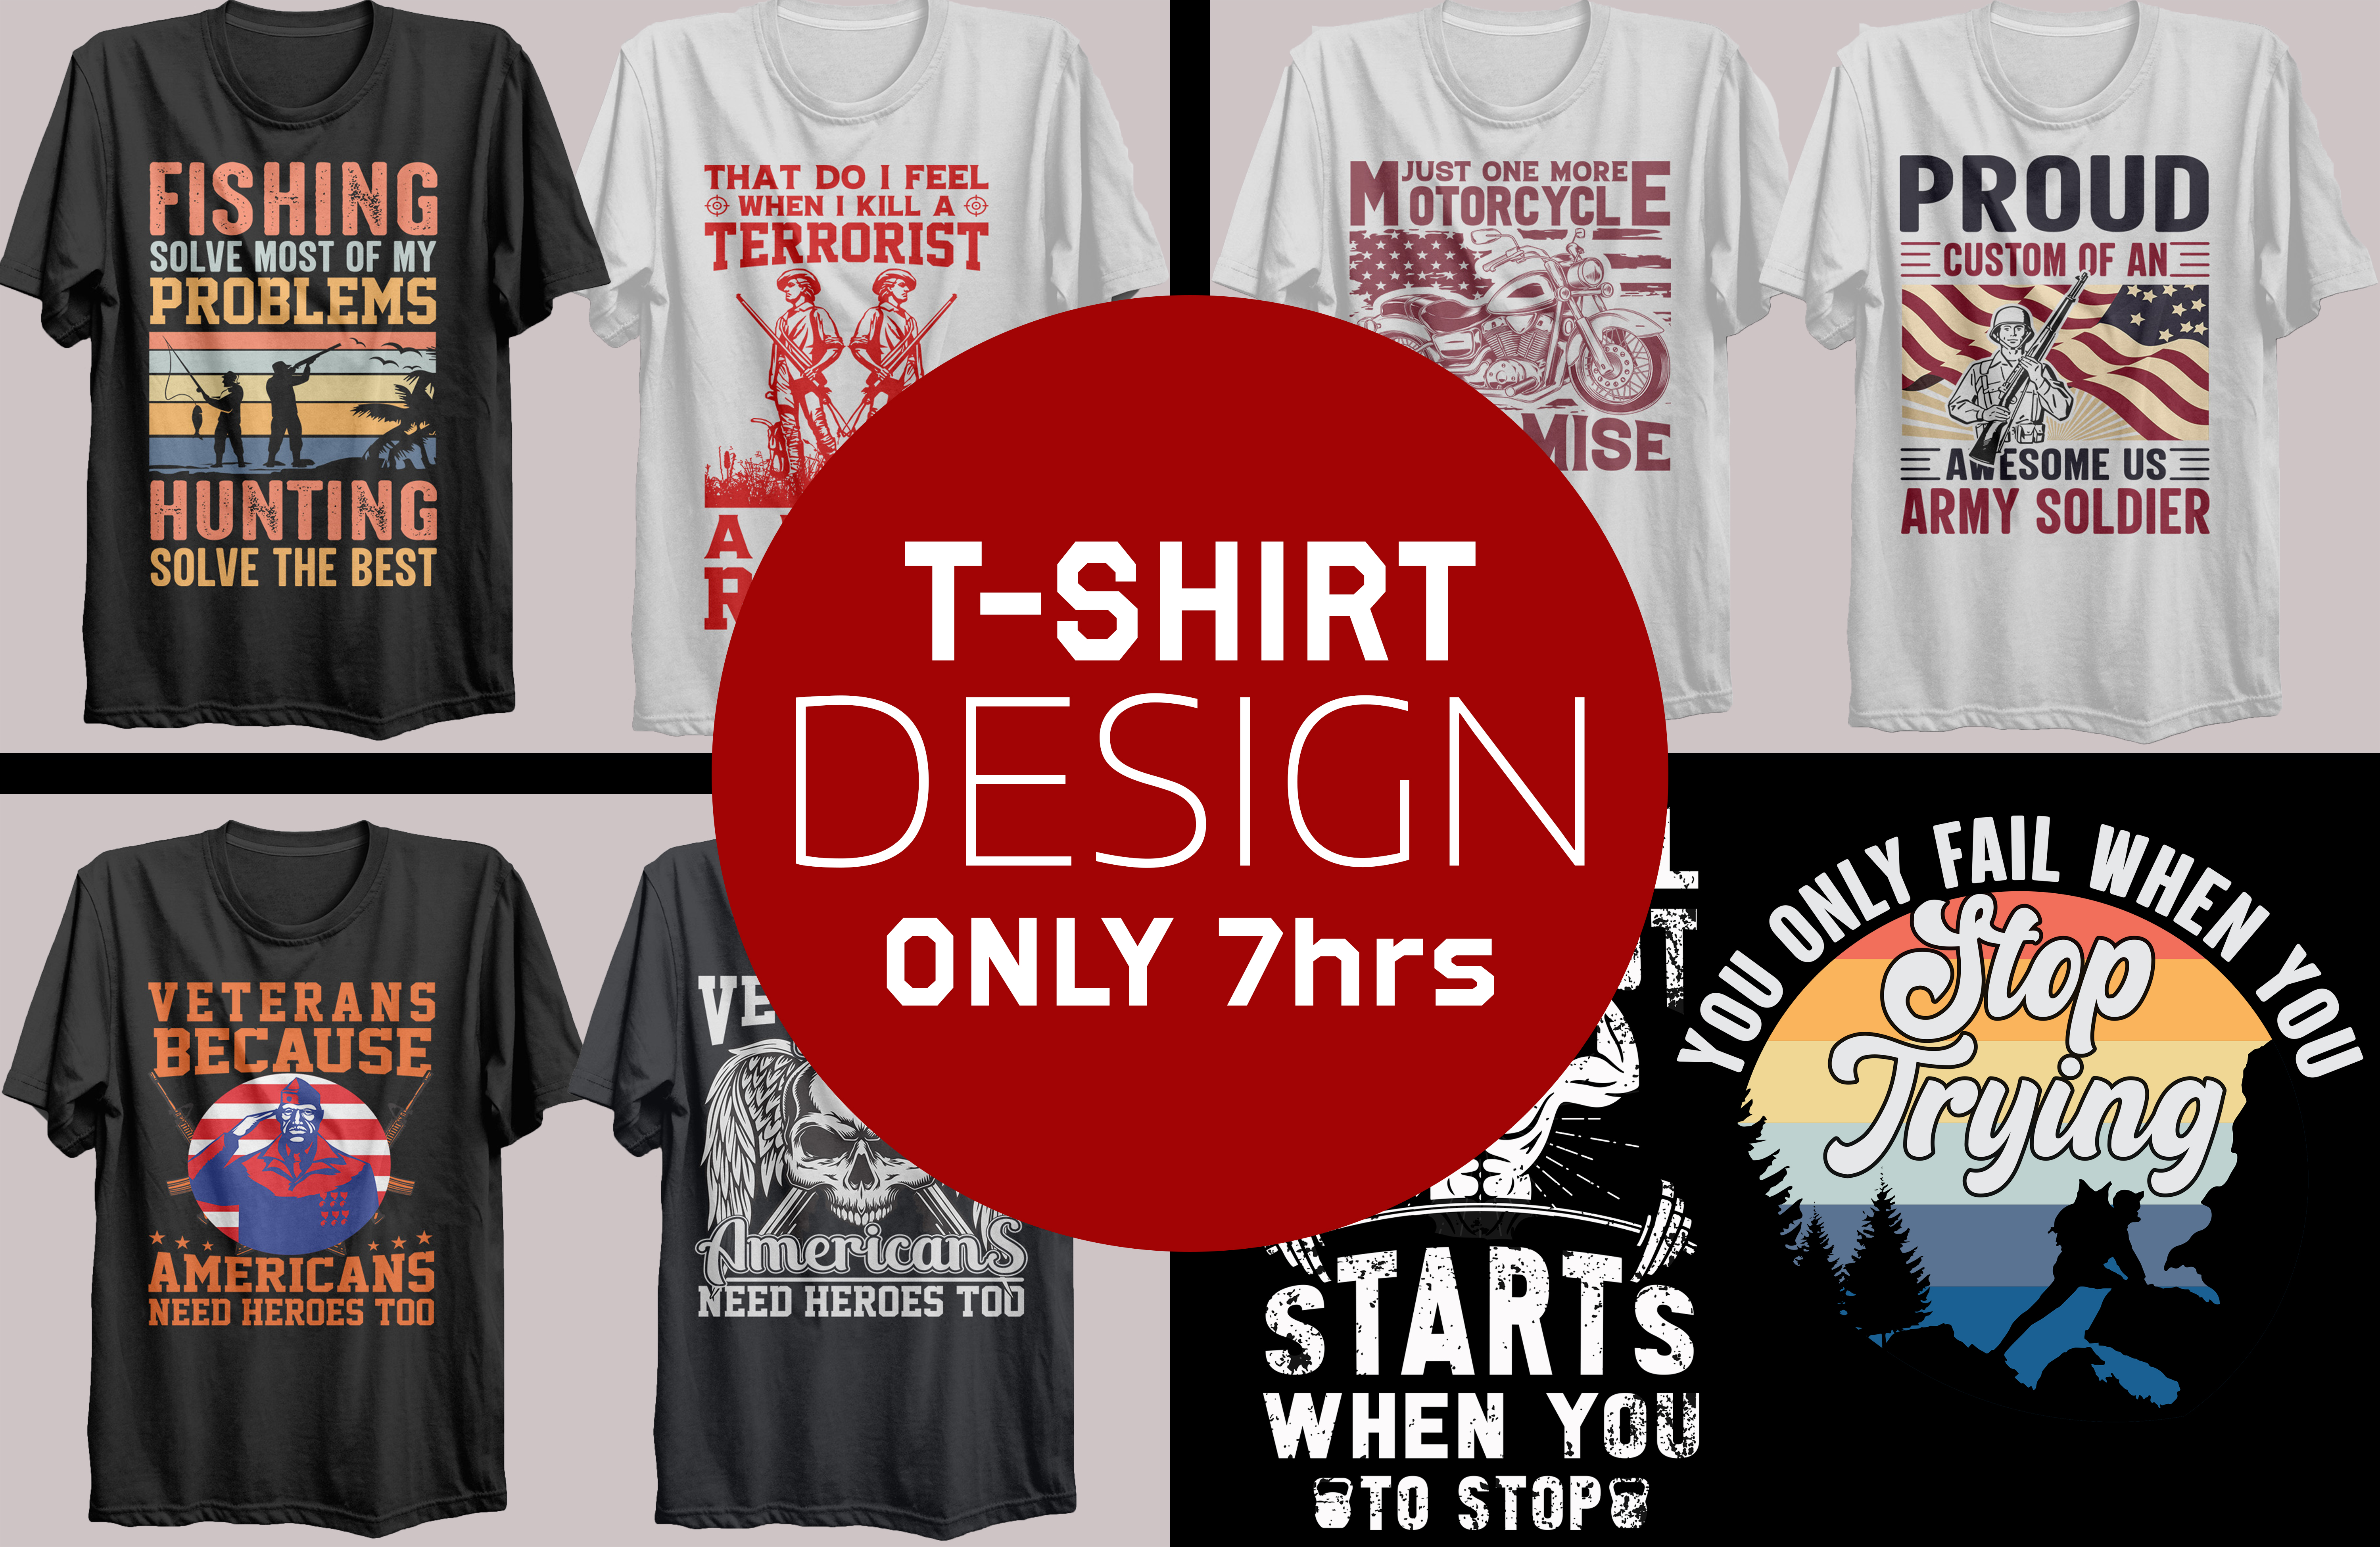 i will do typography t shirt,  graphic custom creative t shirt design in 7 hrs